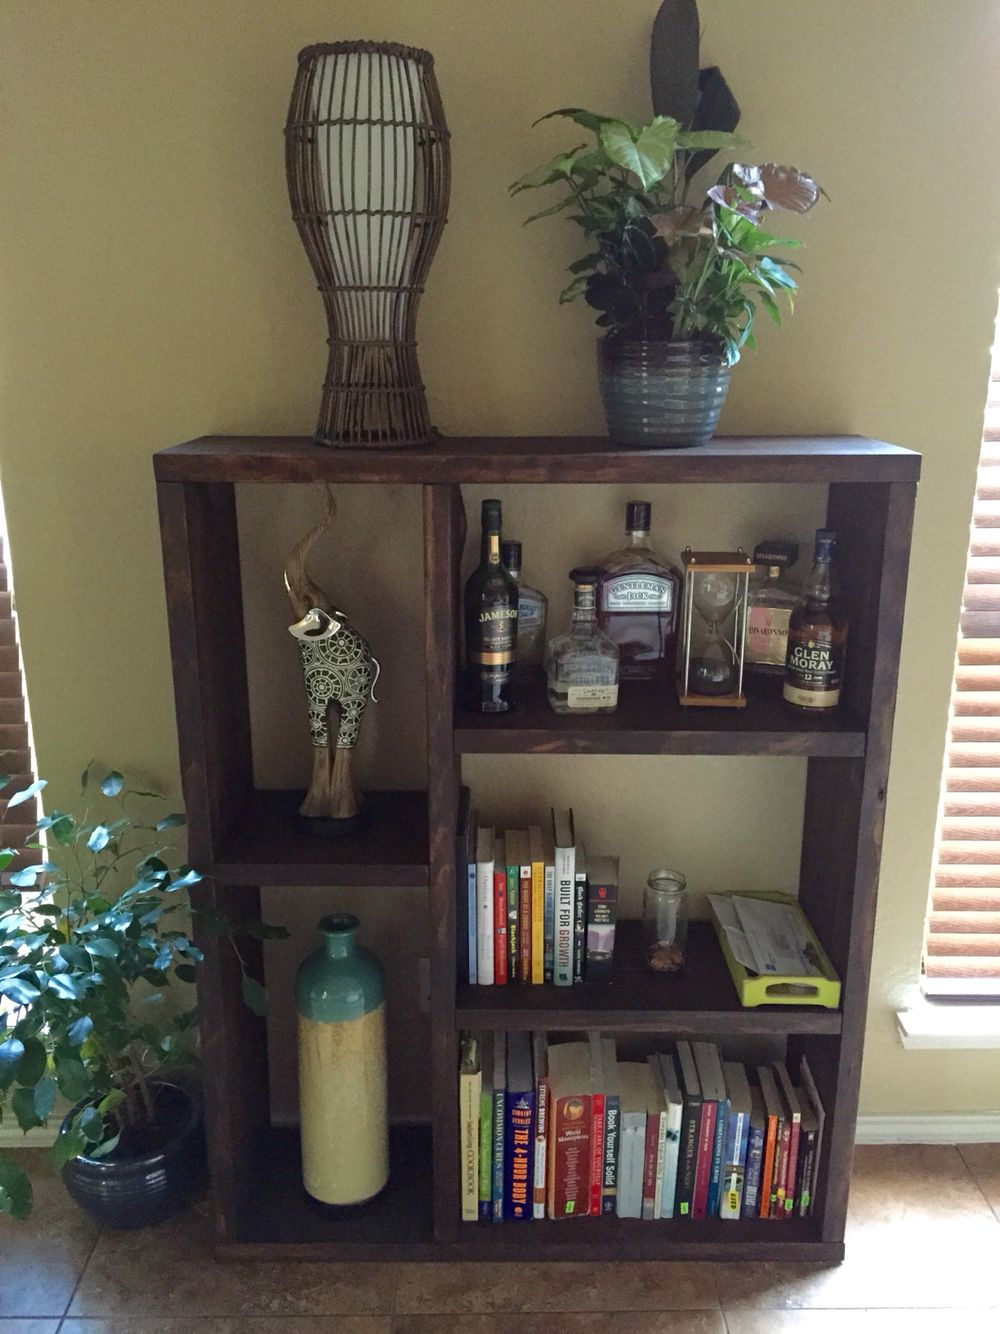 Handmade book/decoration shelves!